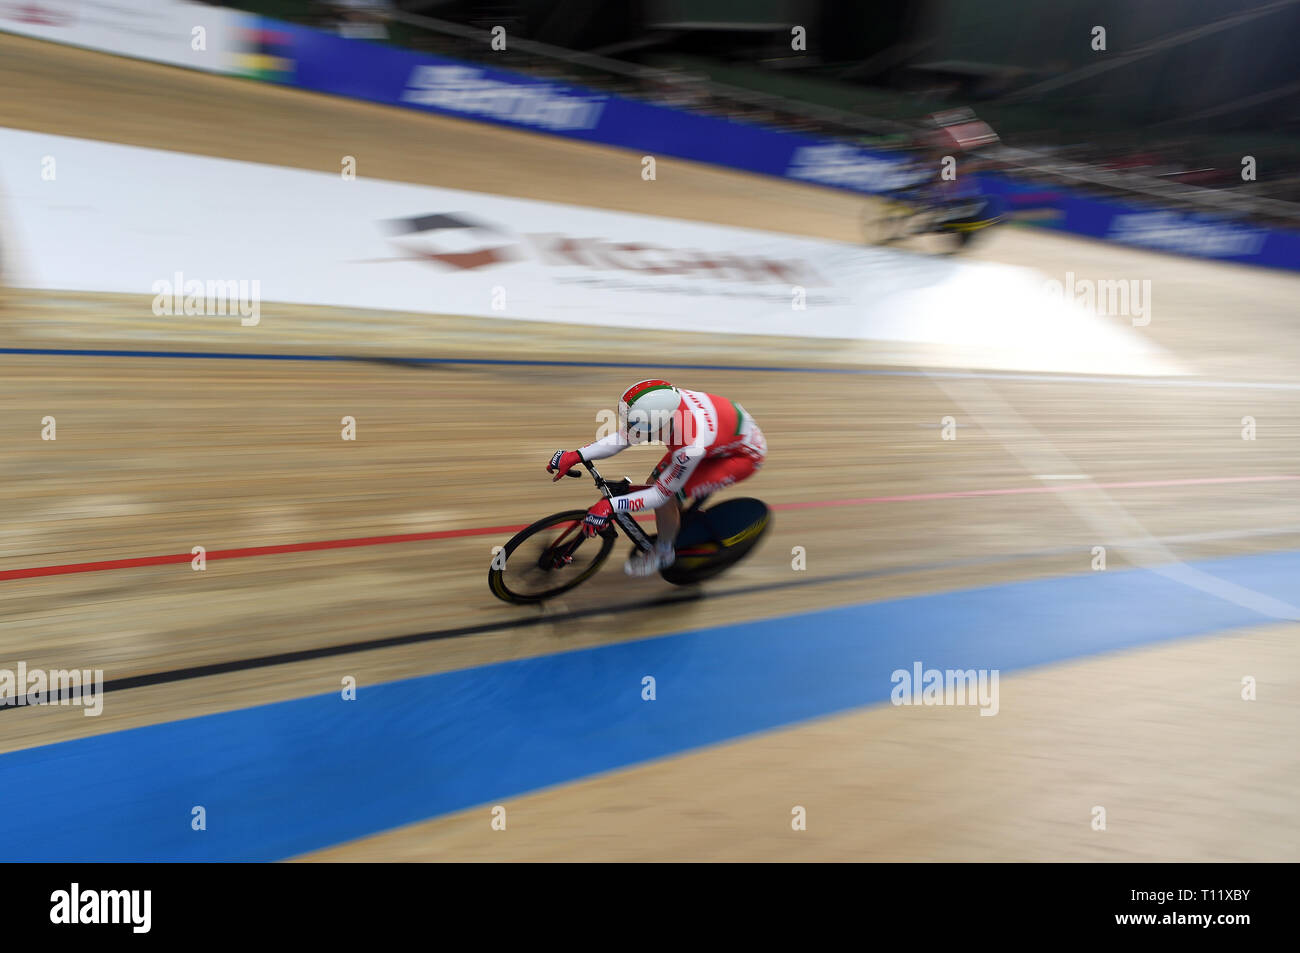 PRUSZKOW, POLAND - MARCH 03, 2019: UCI track cycling world